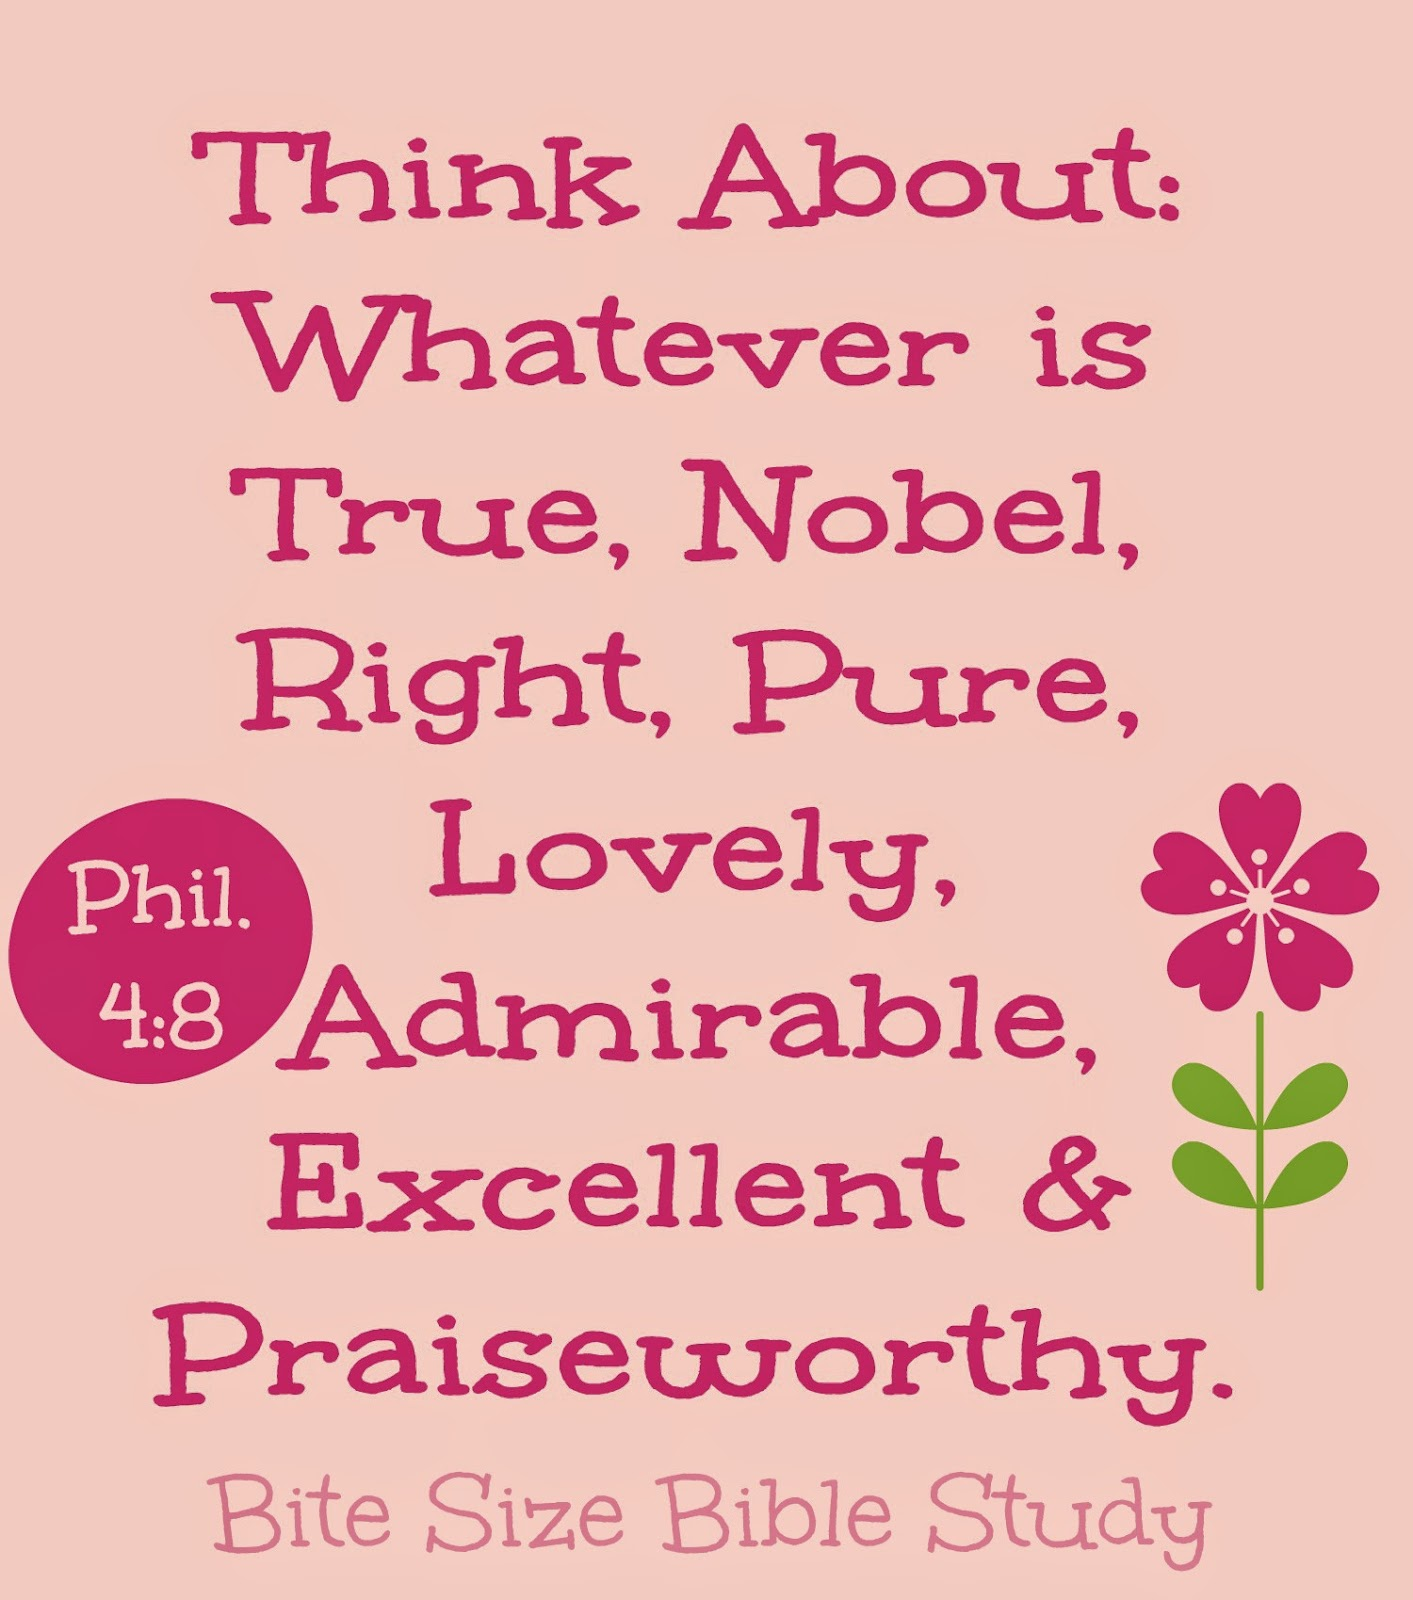 Philippians 4:8-9, thinking on good things, whatever is true